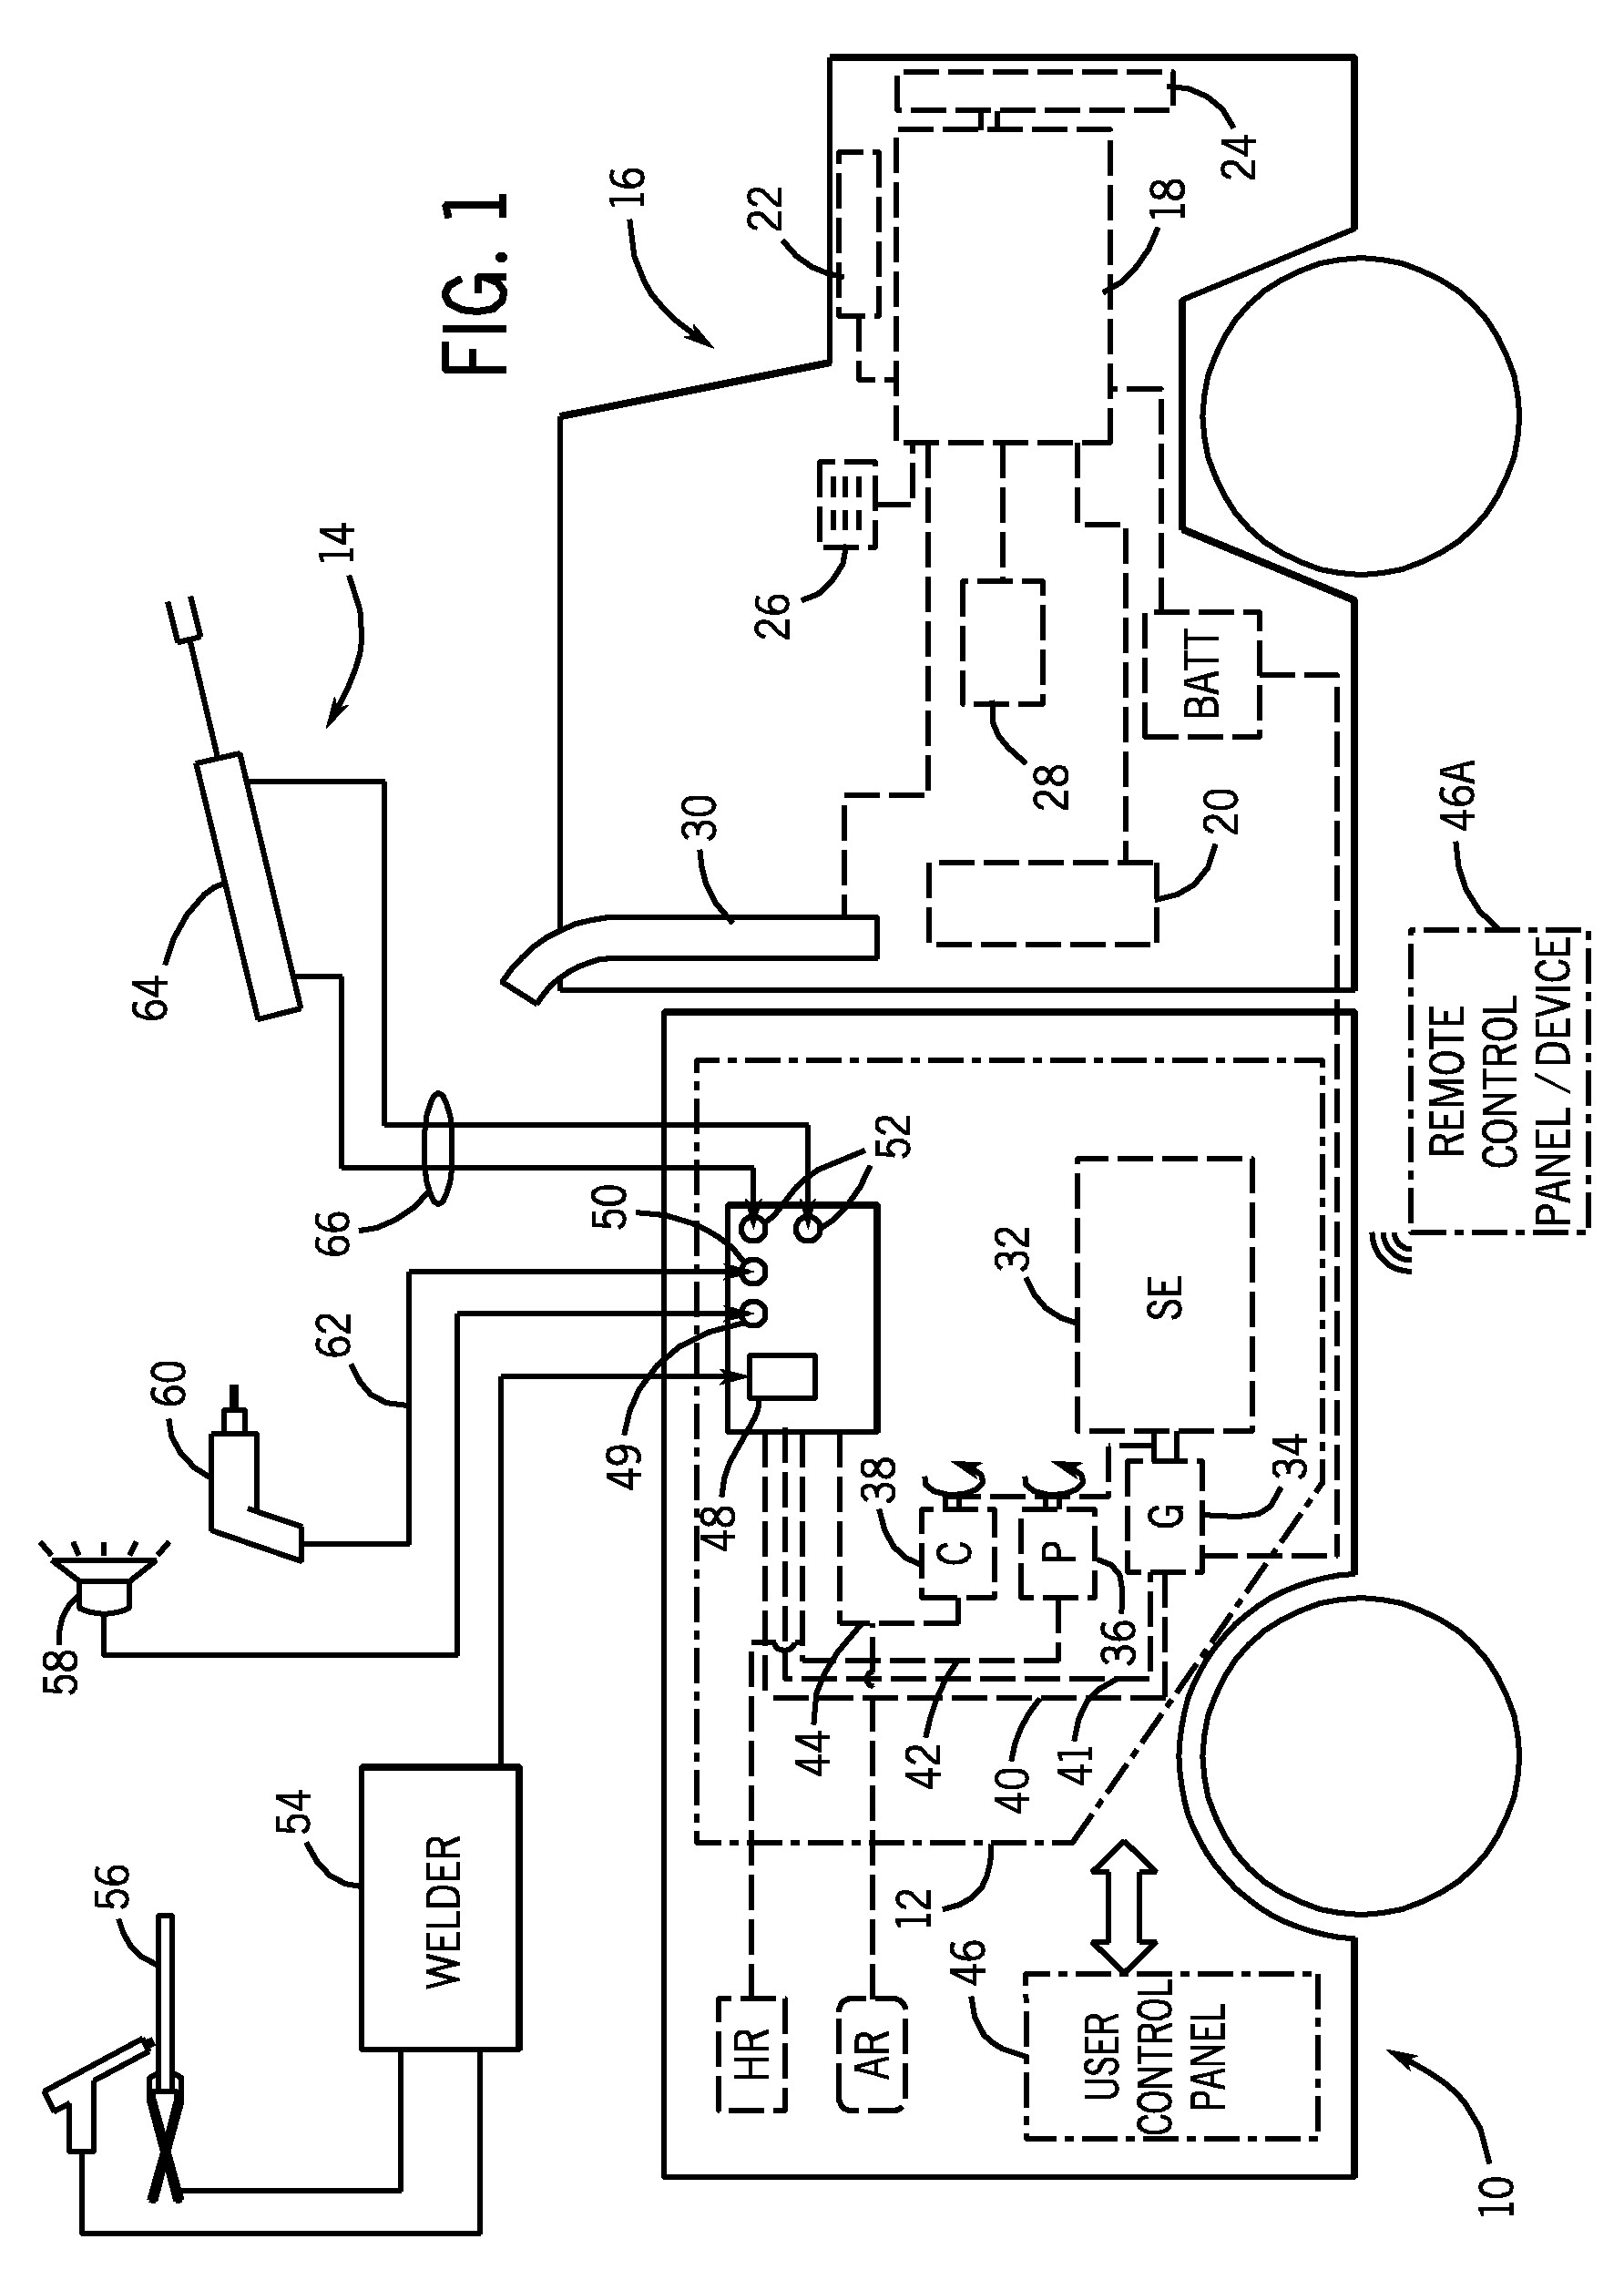 12 volt motorcycle wiring diagram